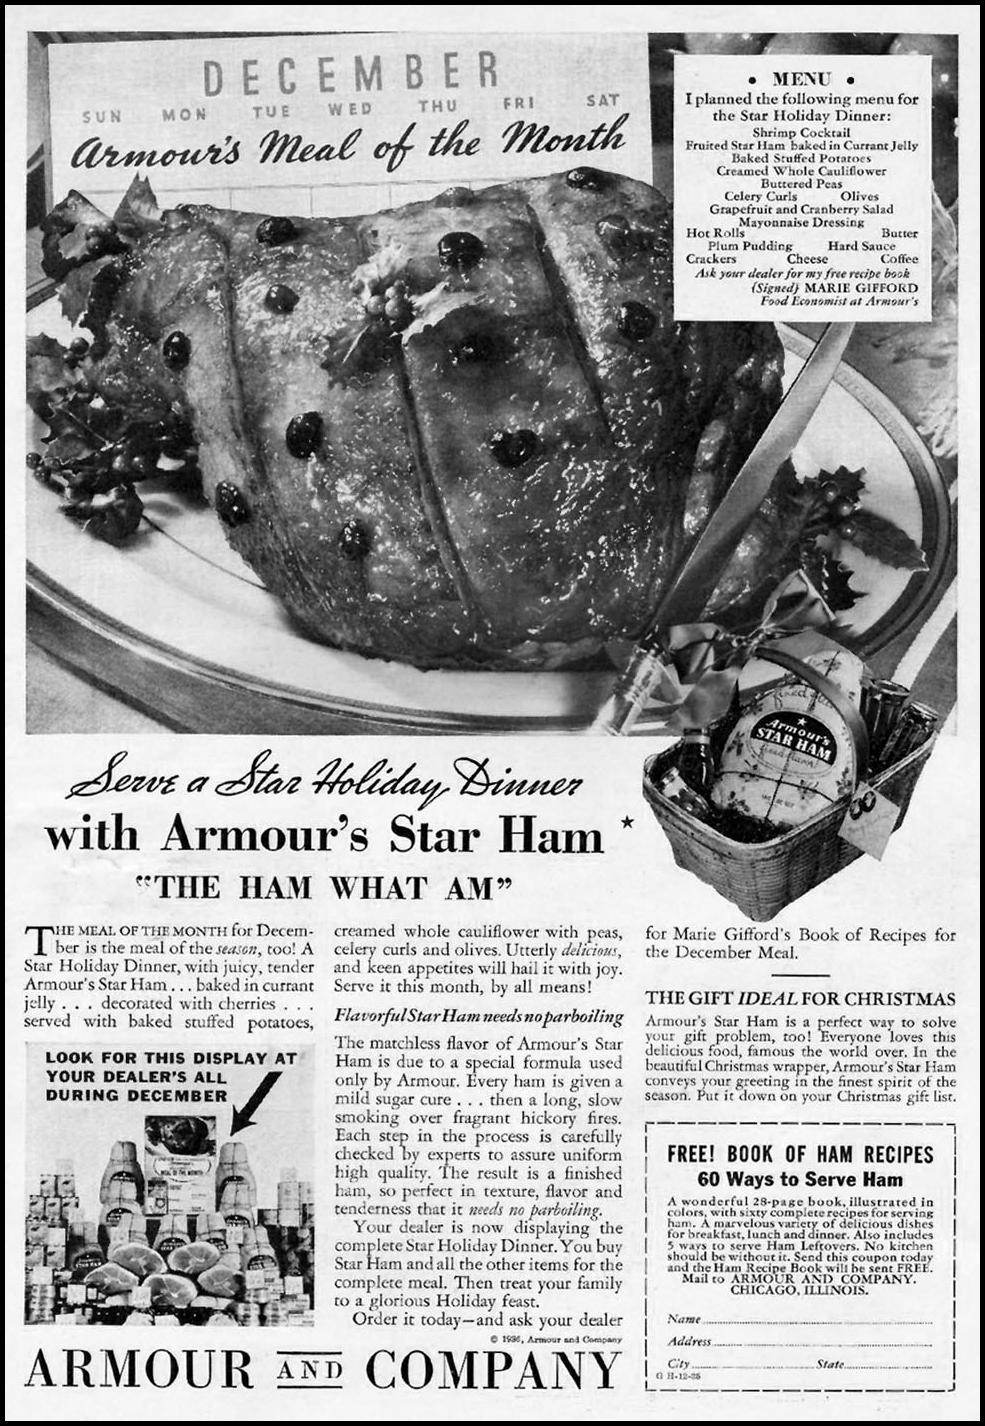 ARMOUR STAR HAM